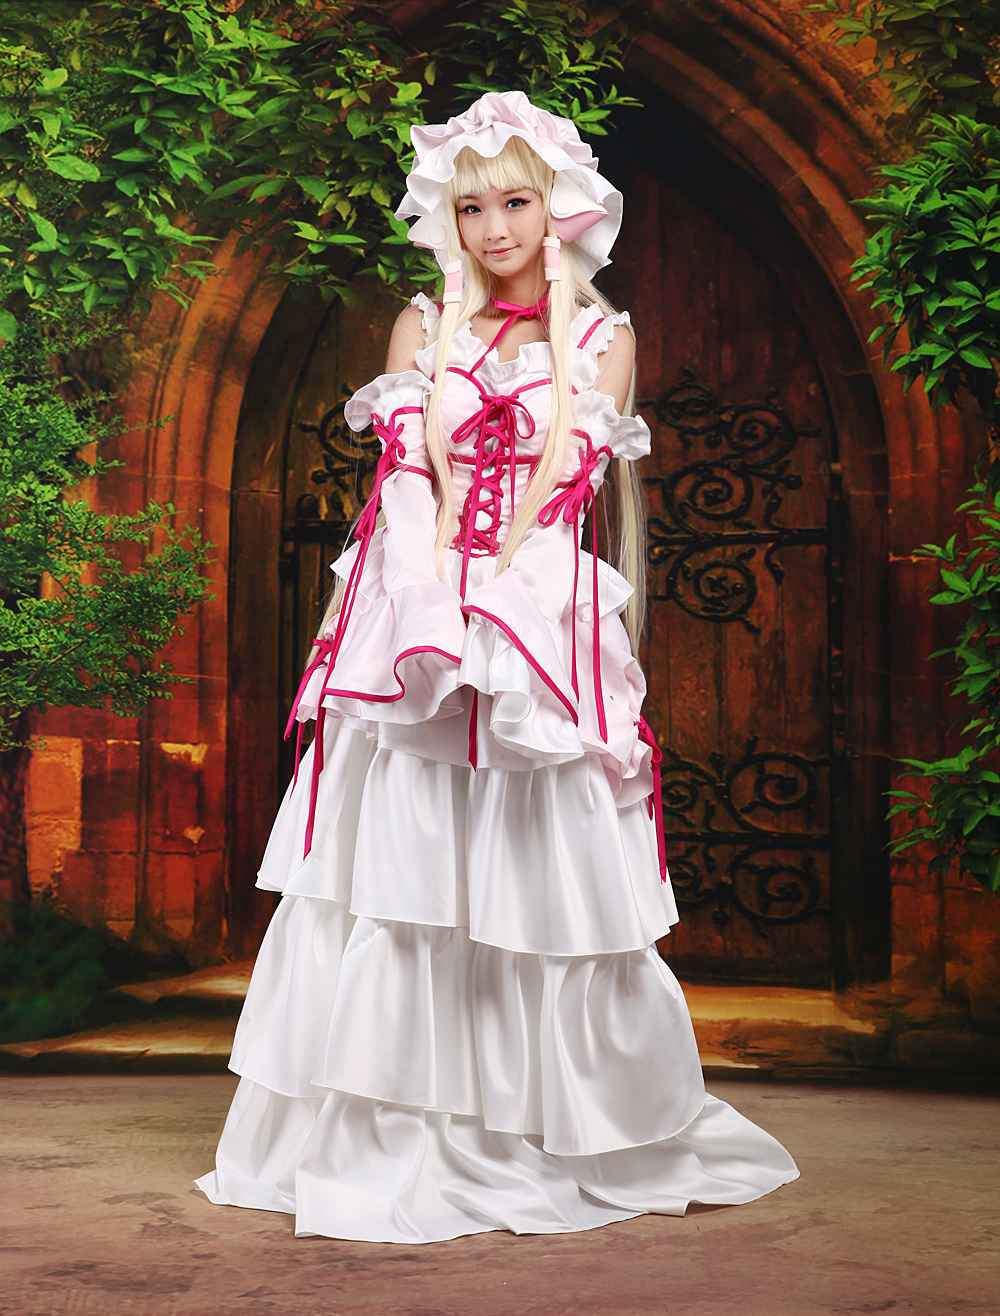 lovable-chii-chic-chobits-cosplay-costume